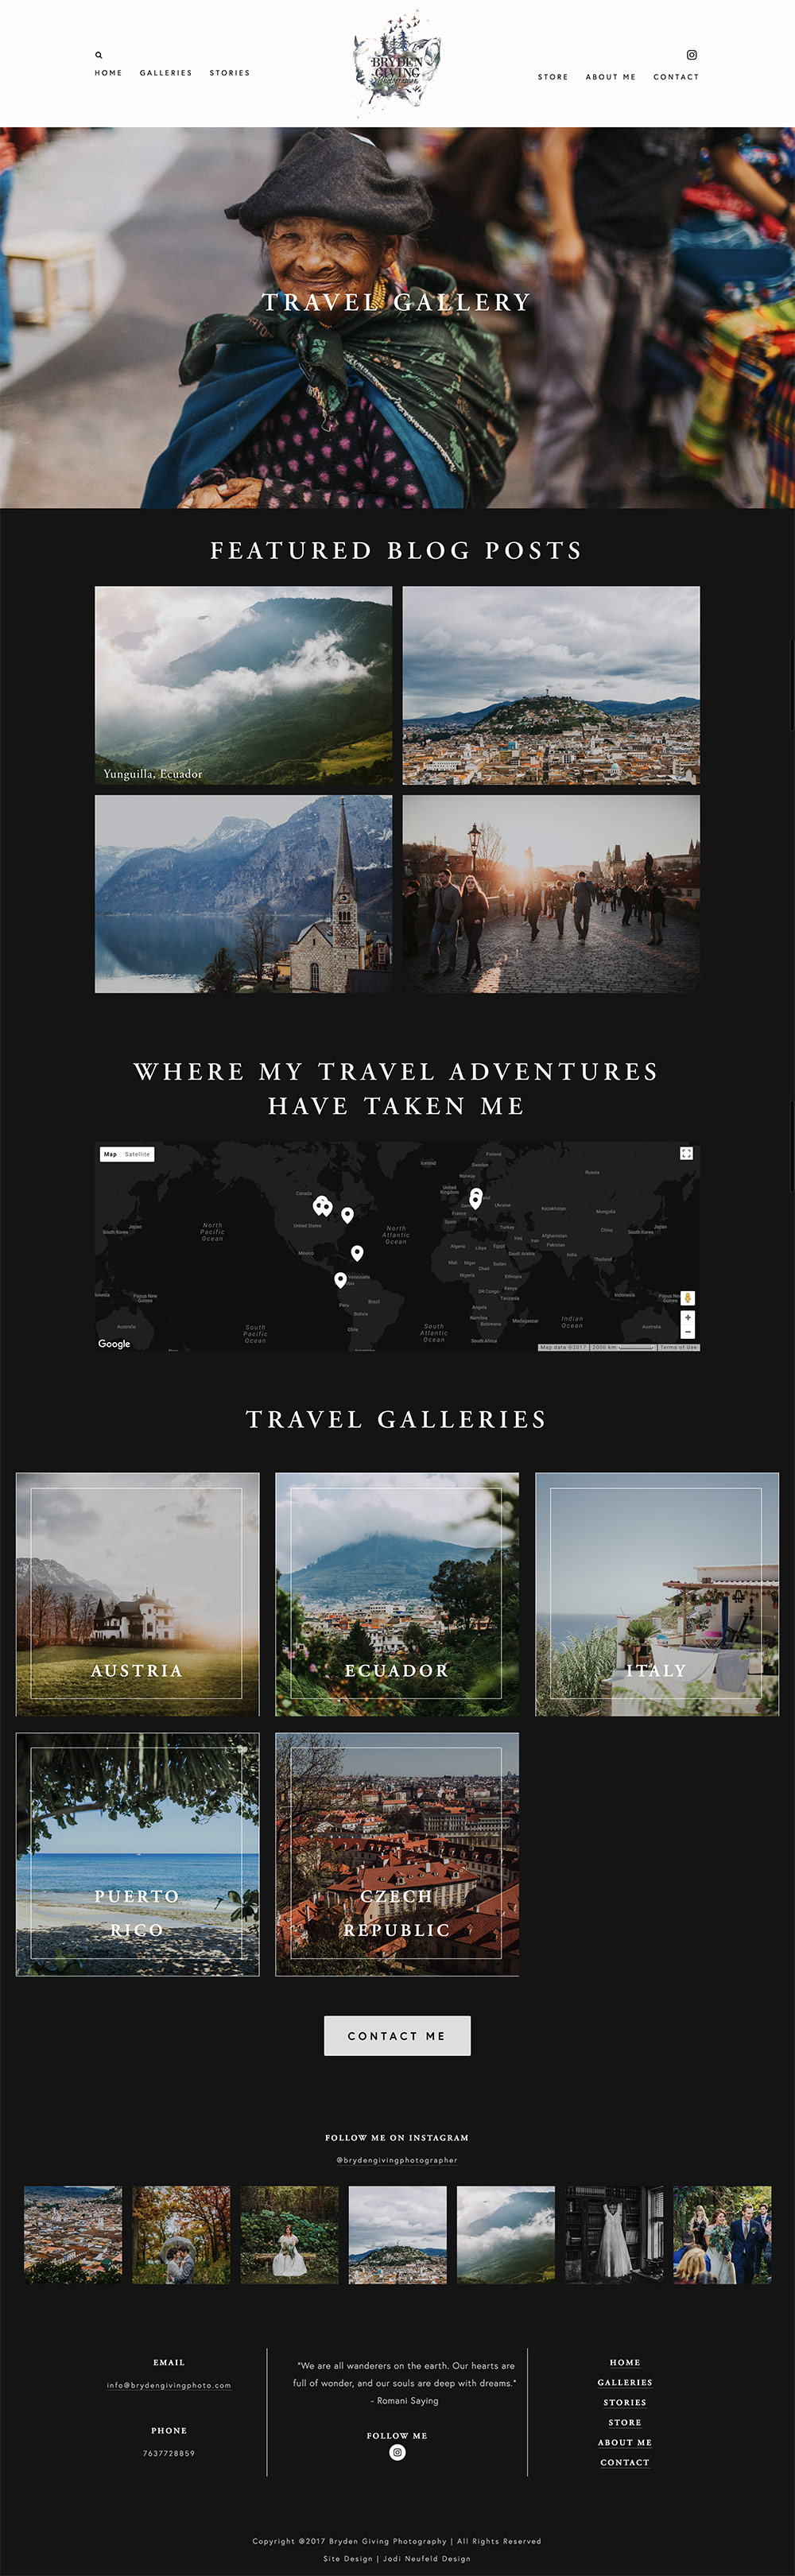 Travel Gallery page.jpg